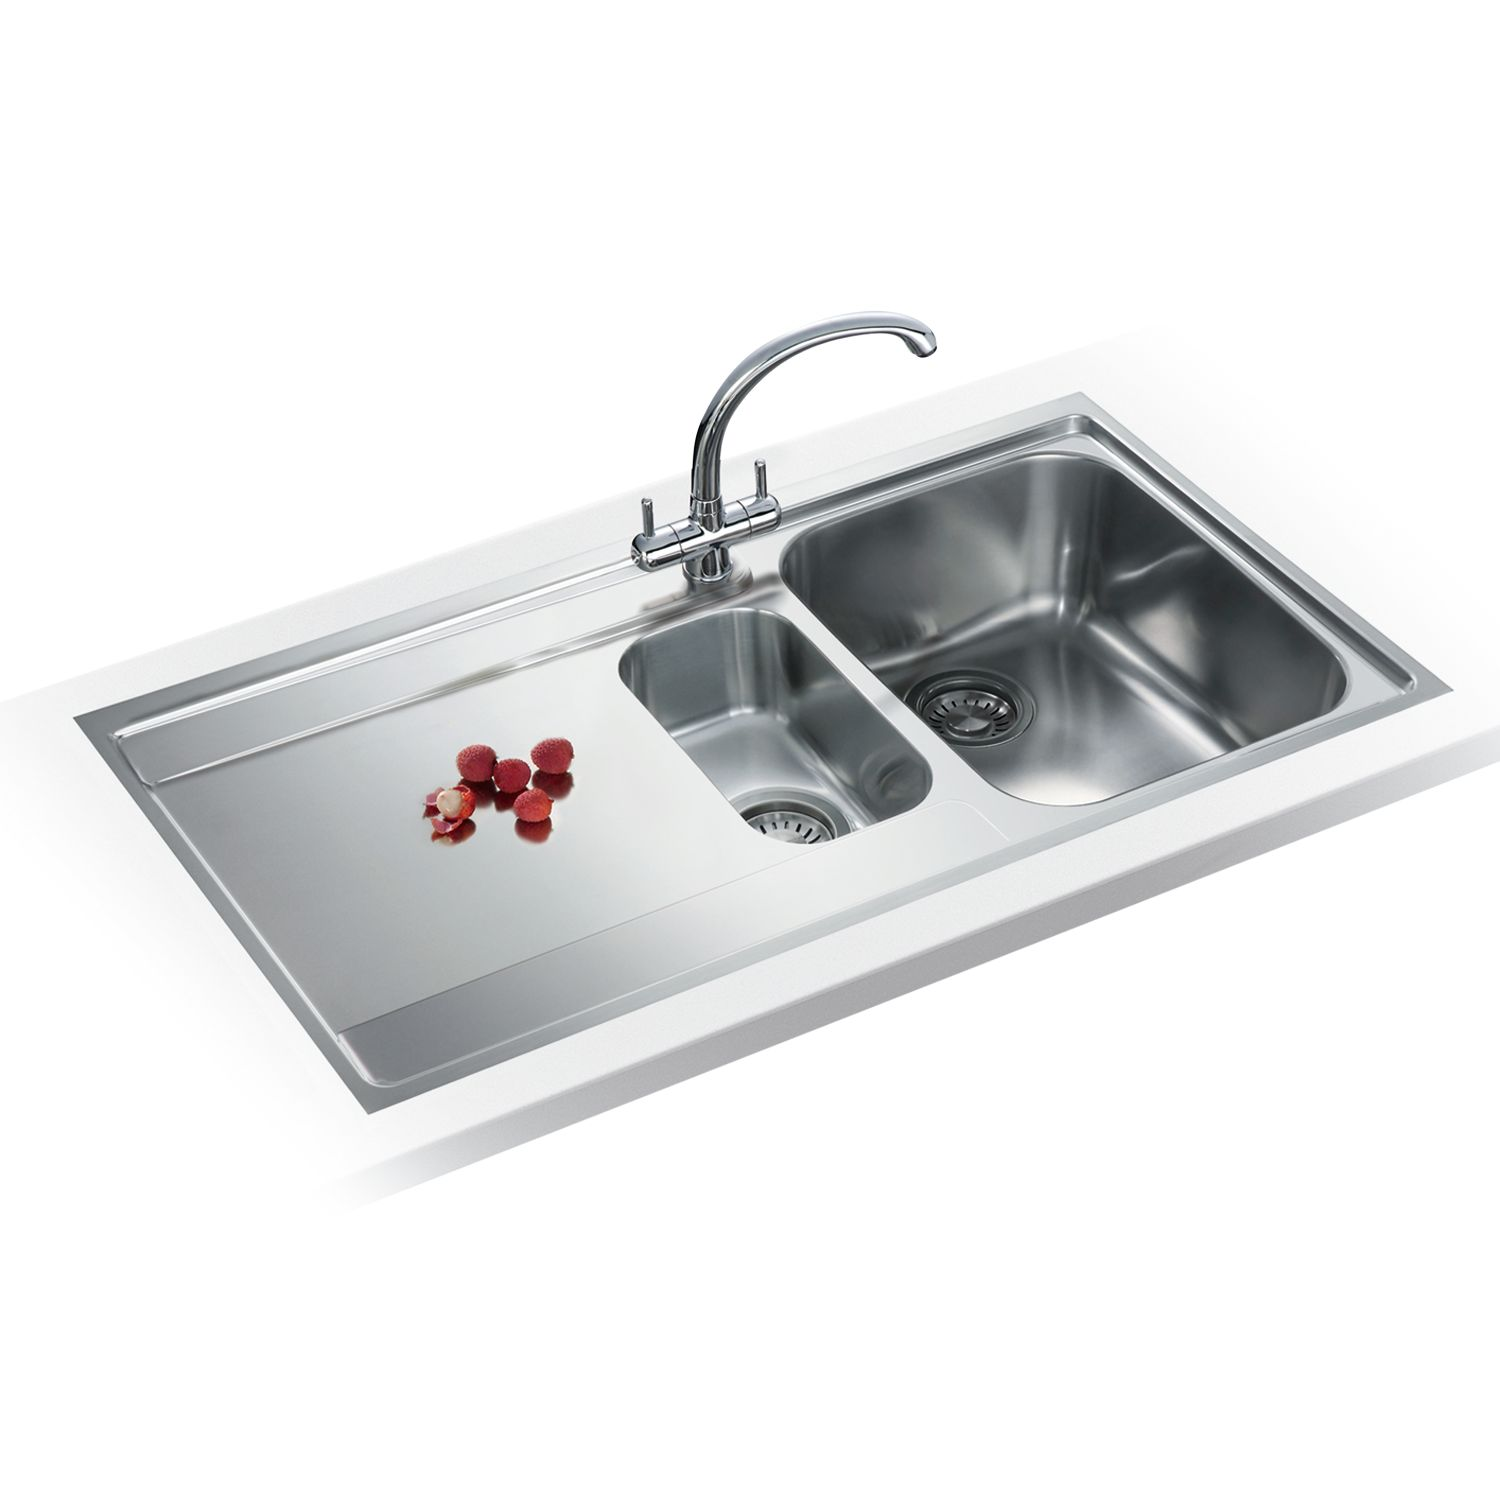 Franke Franke Maris MRX 251 Left Hand 1.5 Bowl Sink, Stainless Steel